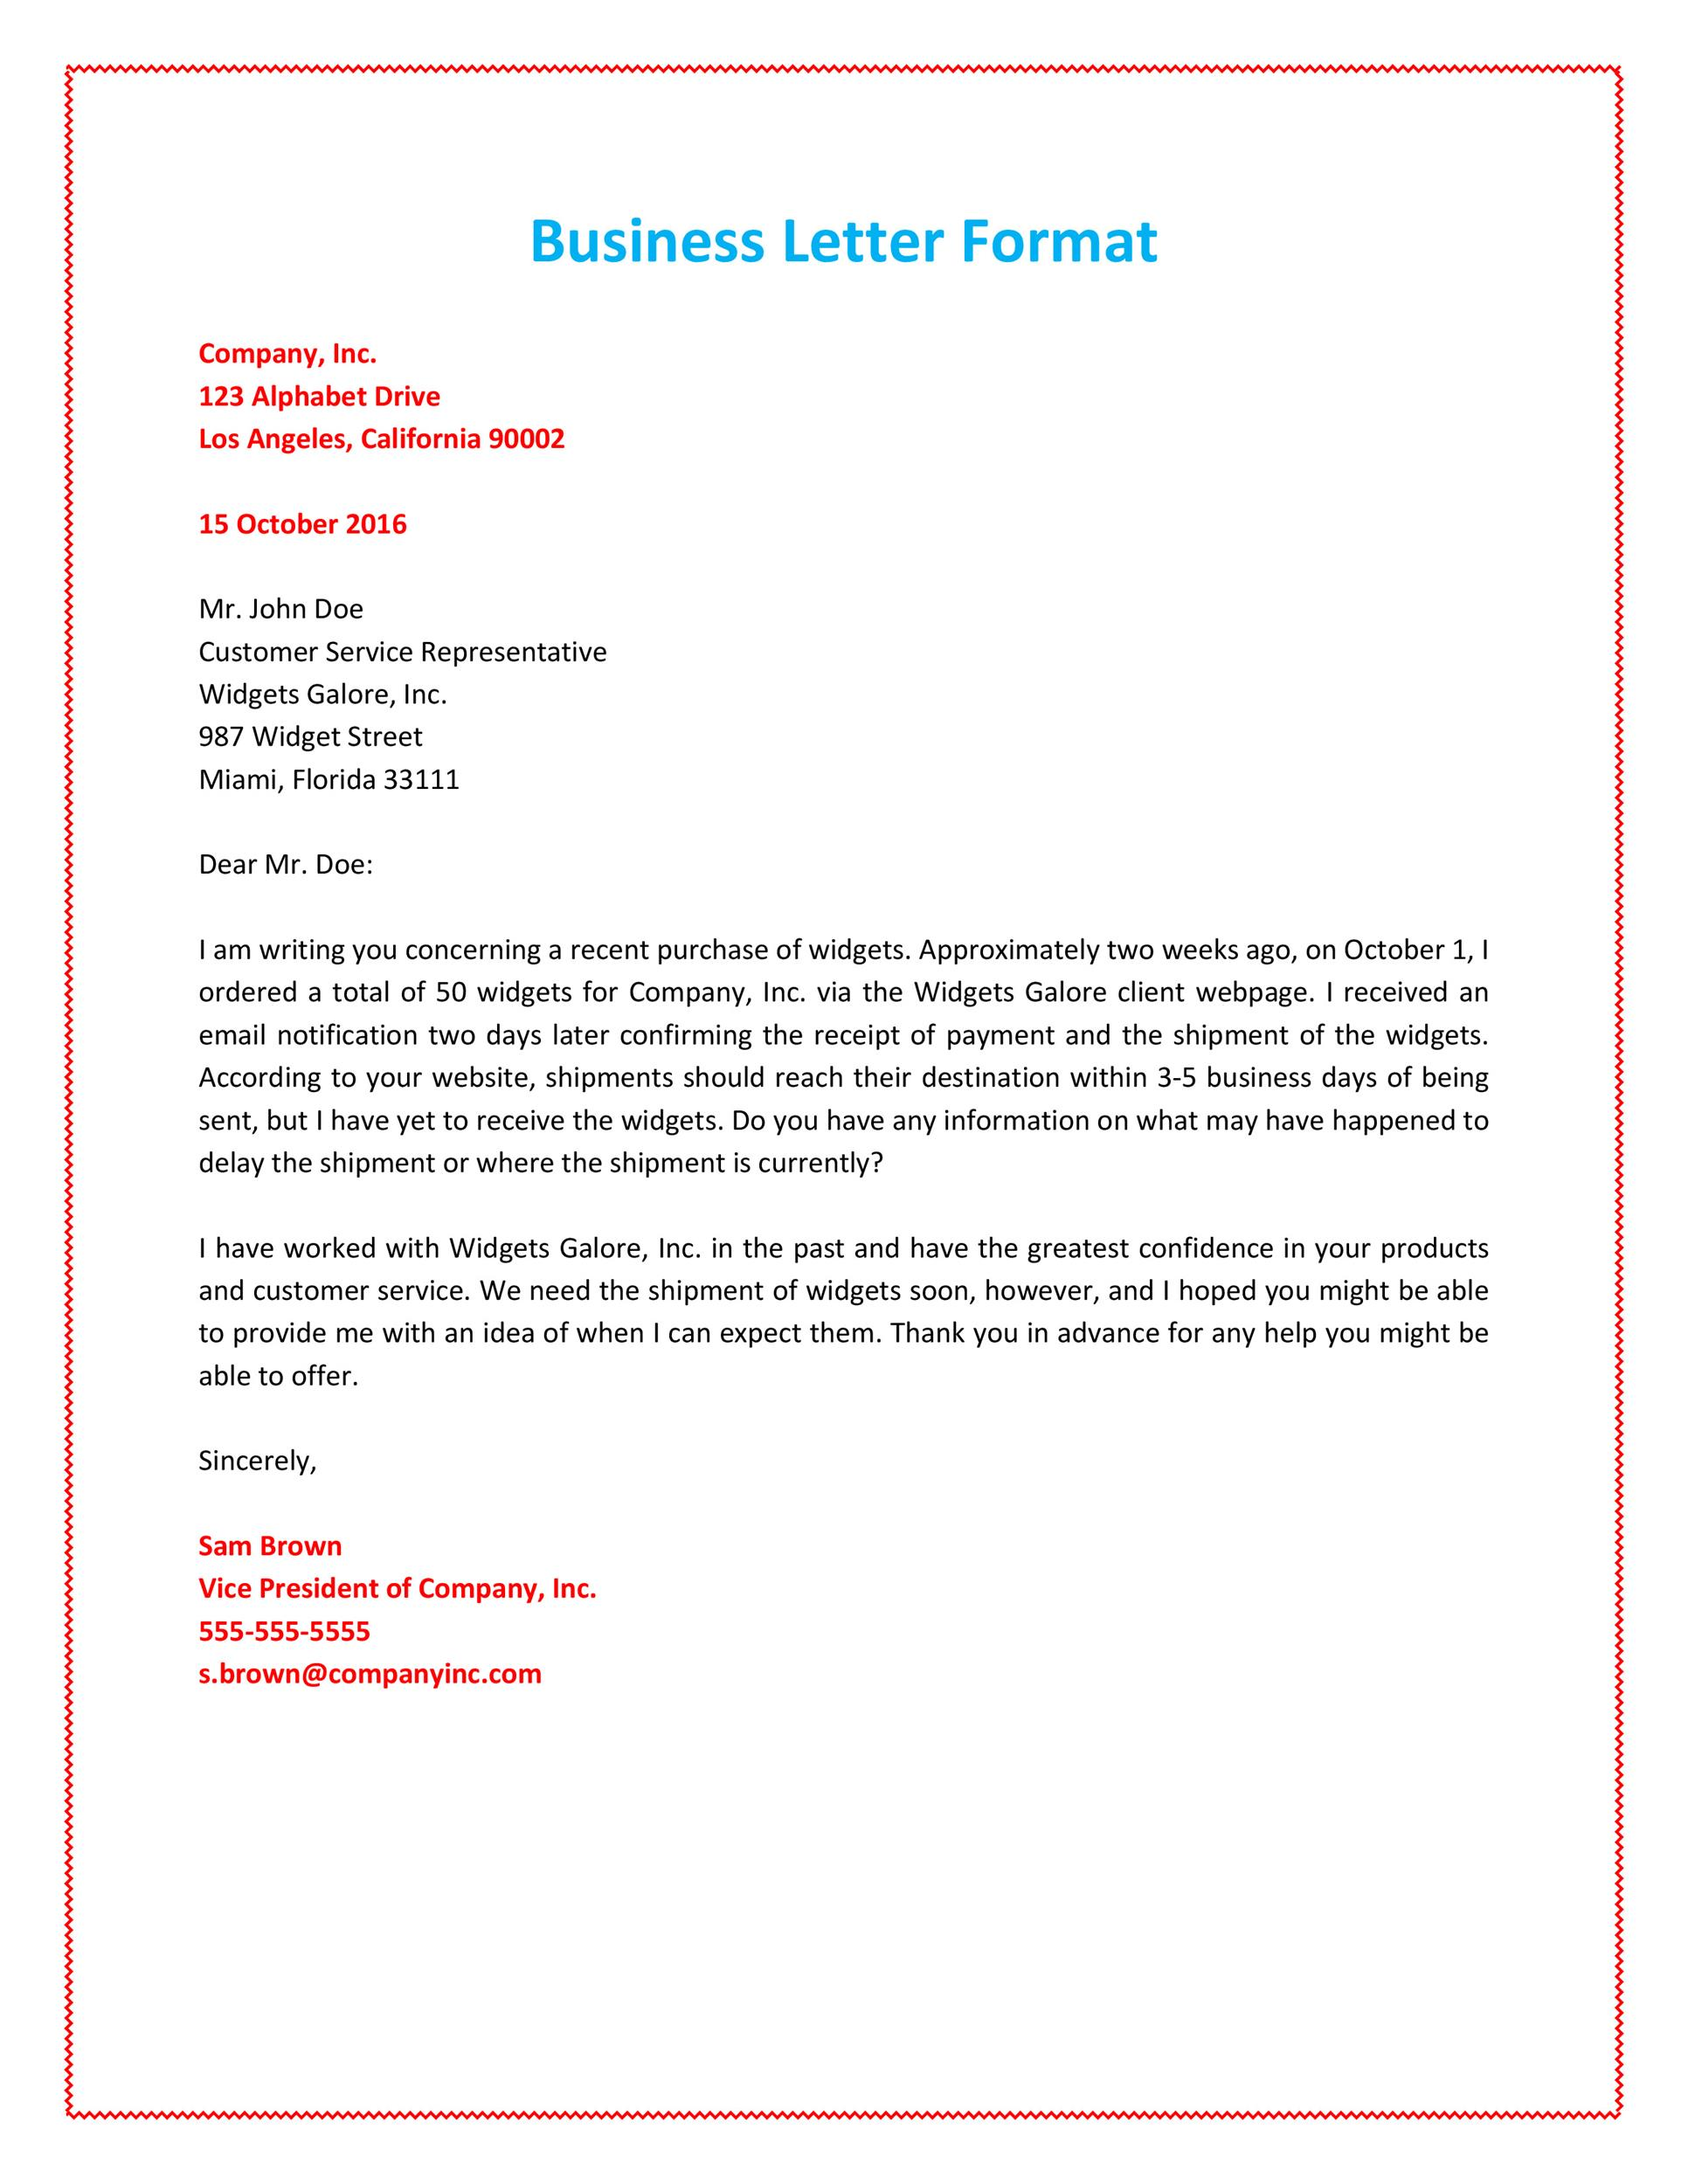 letter format sample business letter format the best letter sample – Professional Letter Formats